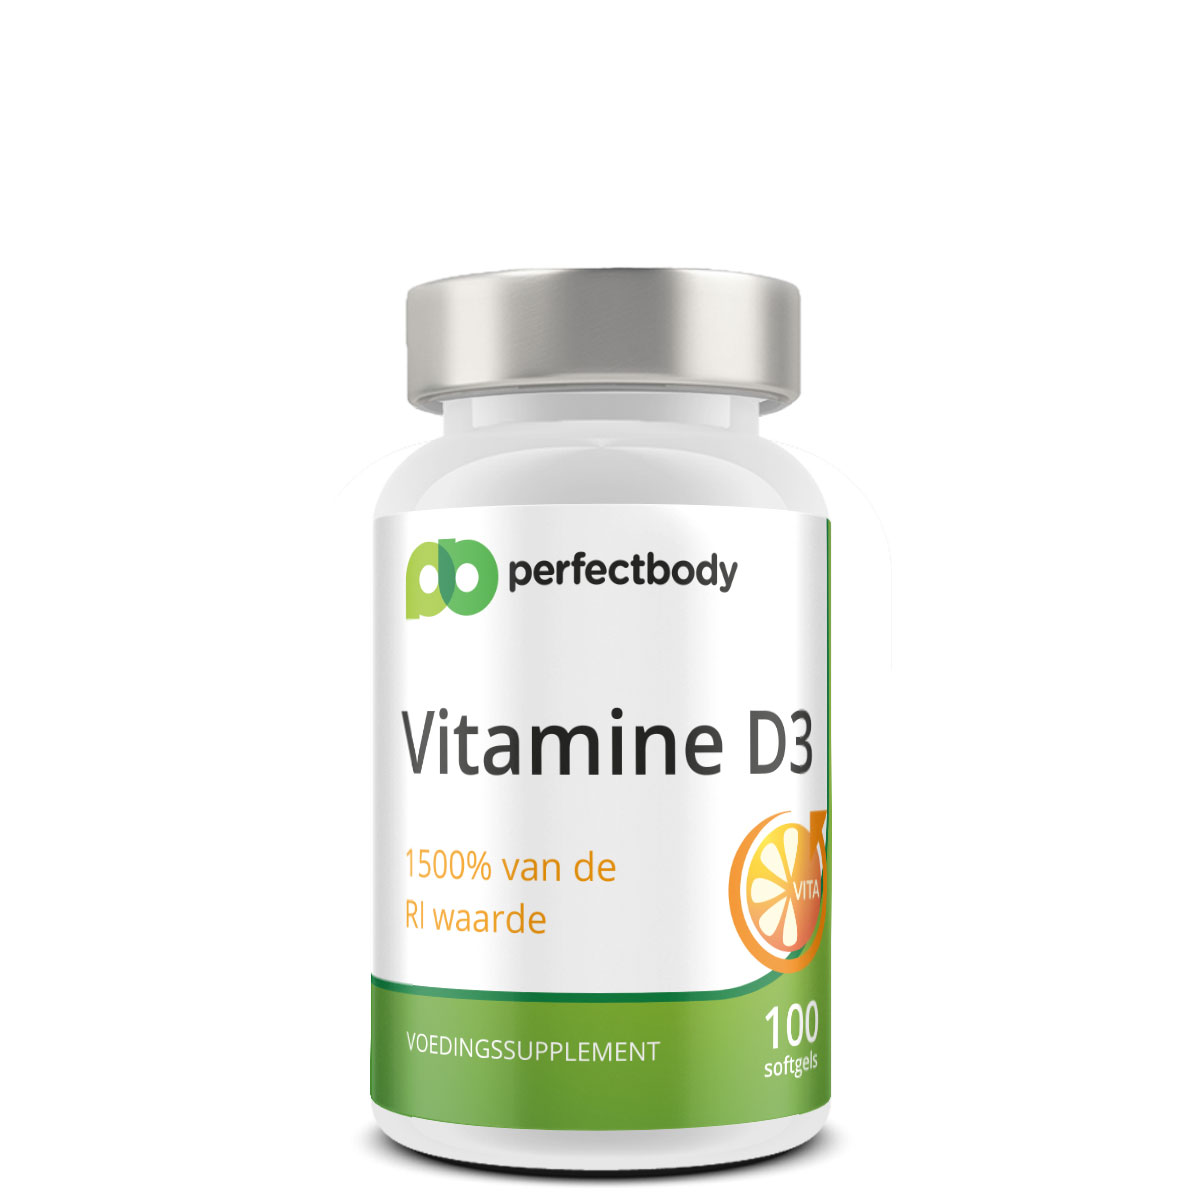 Perfectbody Vitamine D3 - 75mcg - 100 Softgels